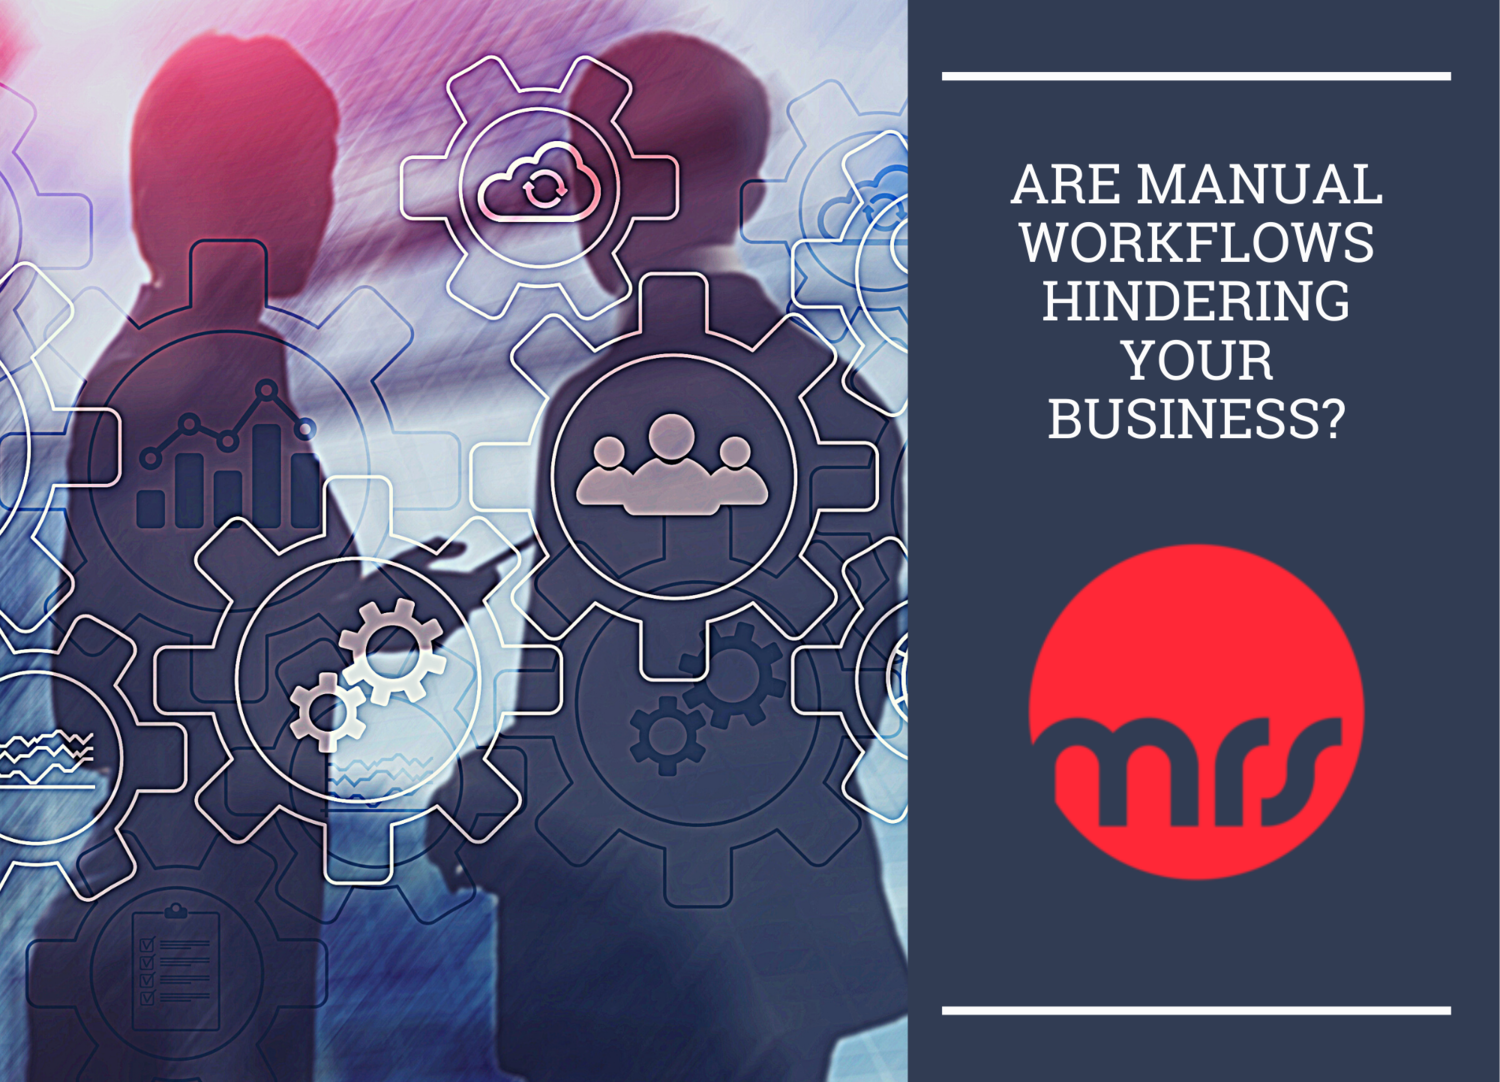 Are manual workflows hindering your business?